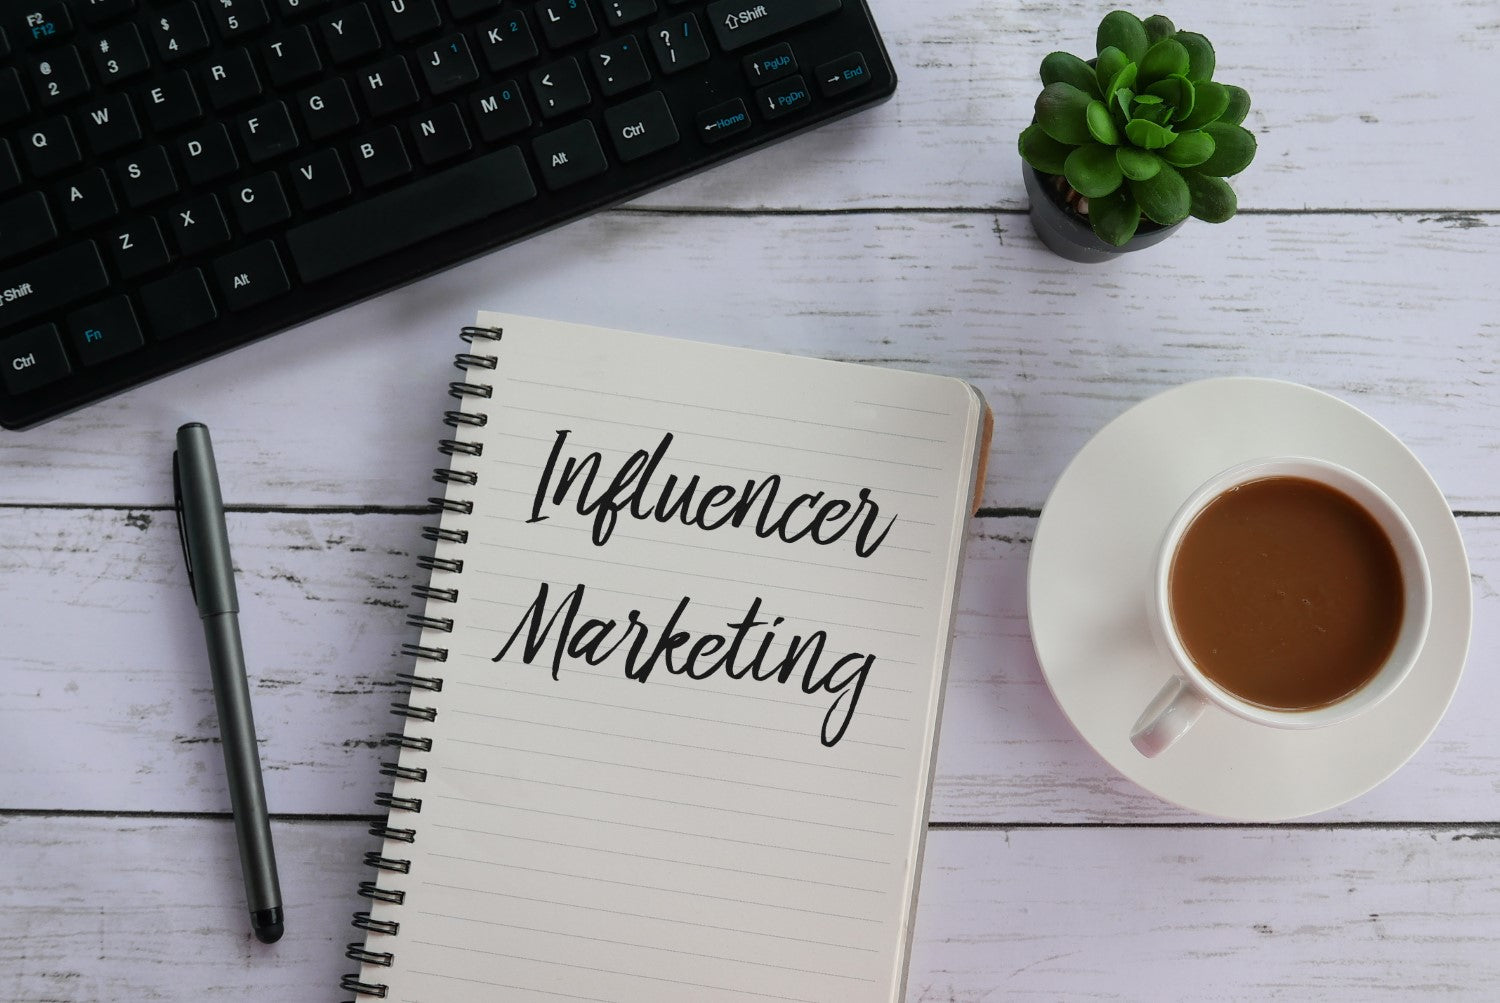 influencer marketing, cup of coffee, plant and pen